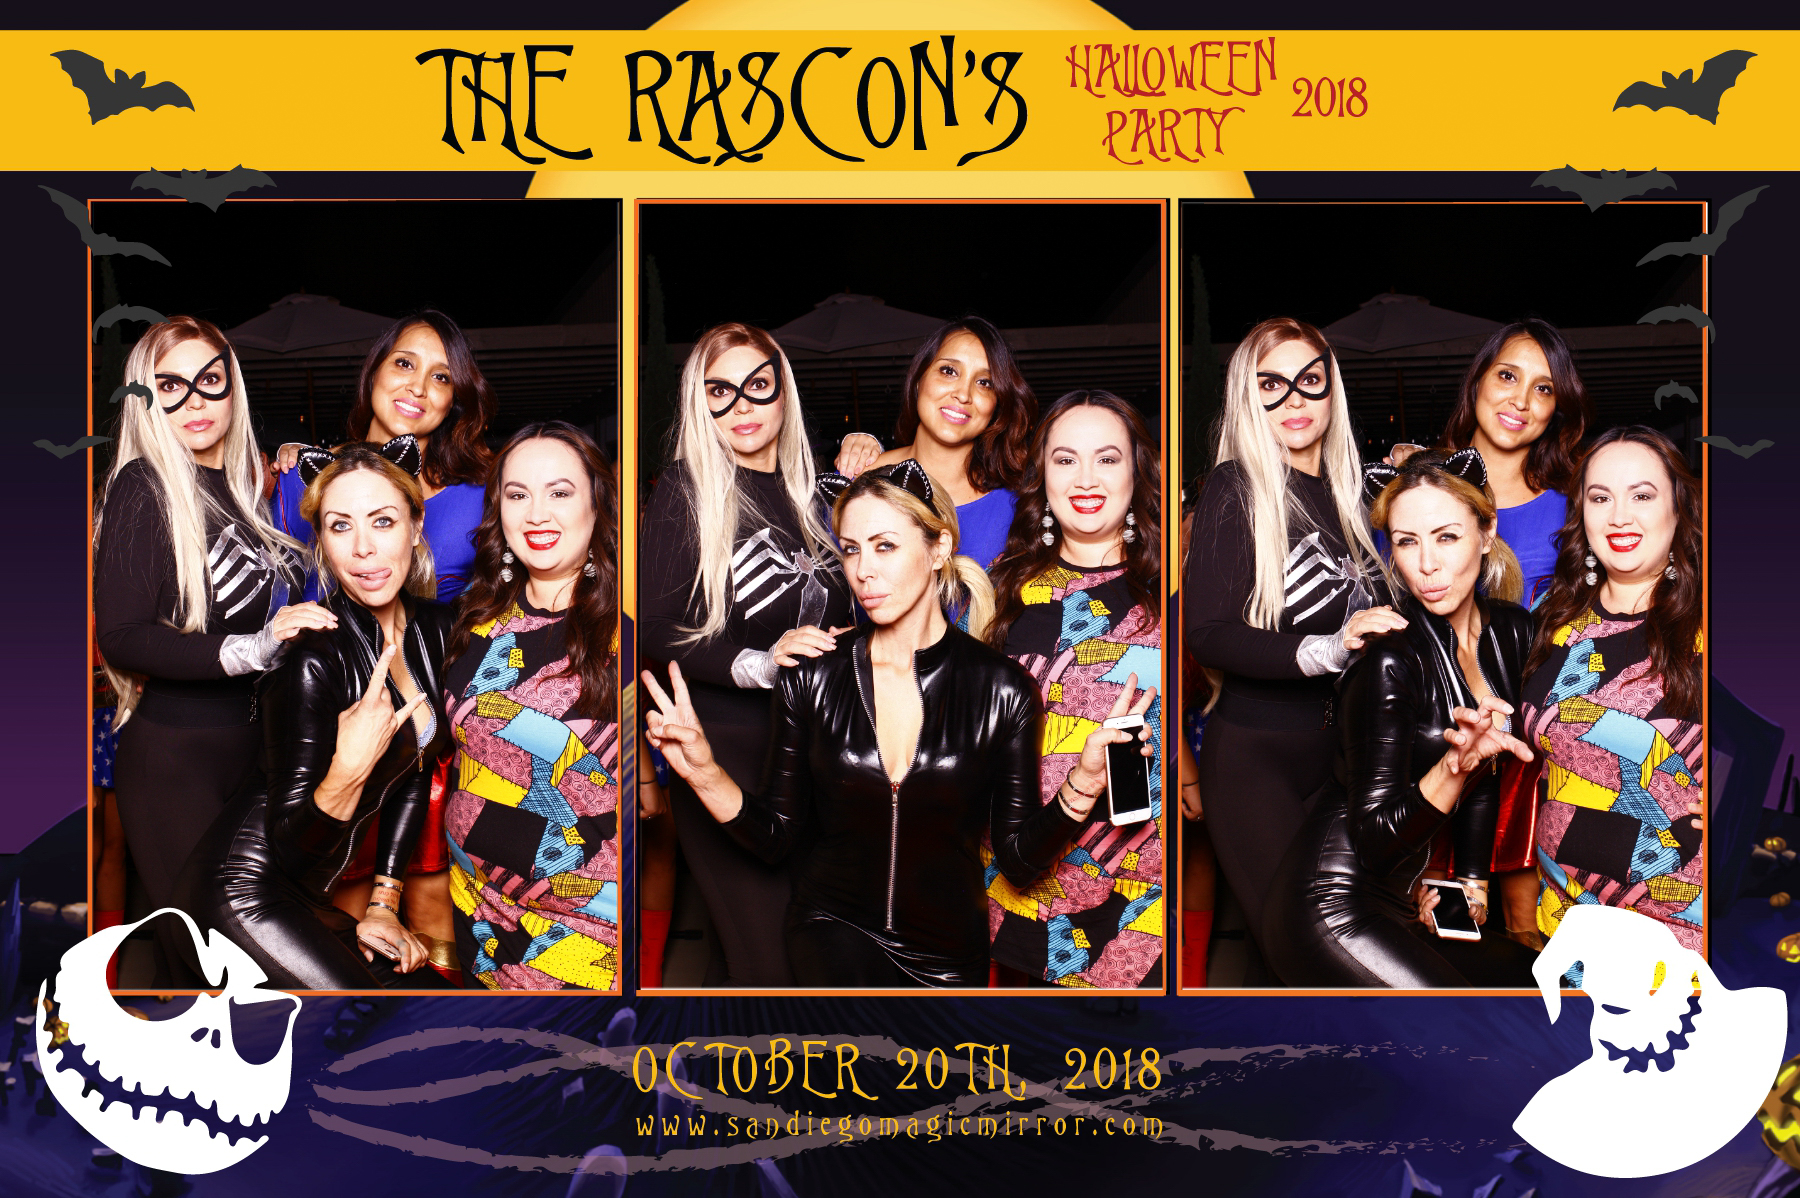 San Diego Magic Mirror Photo Booth Halloween Party